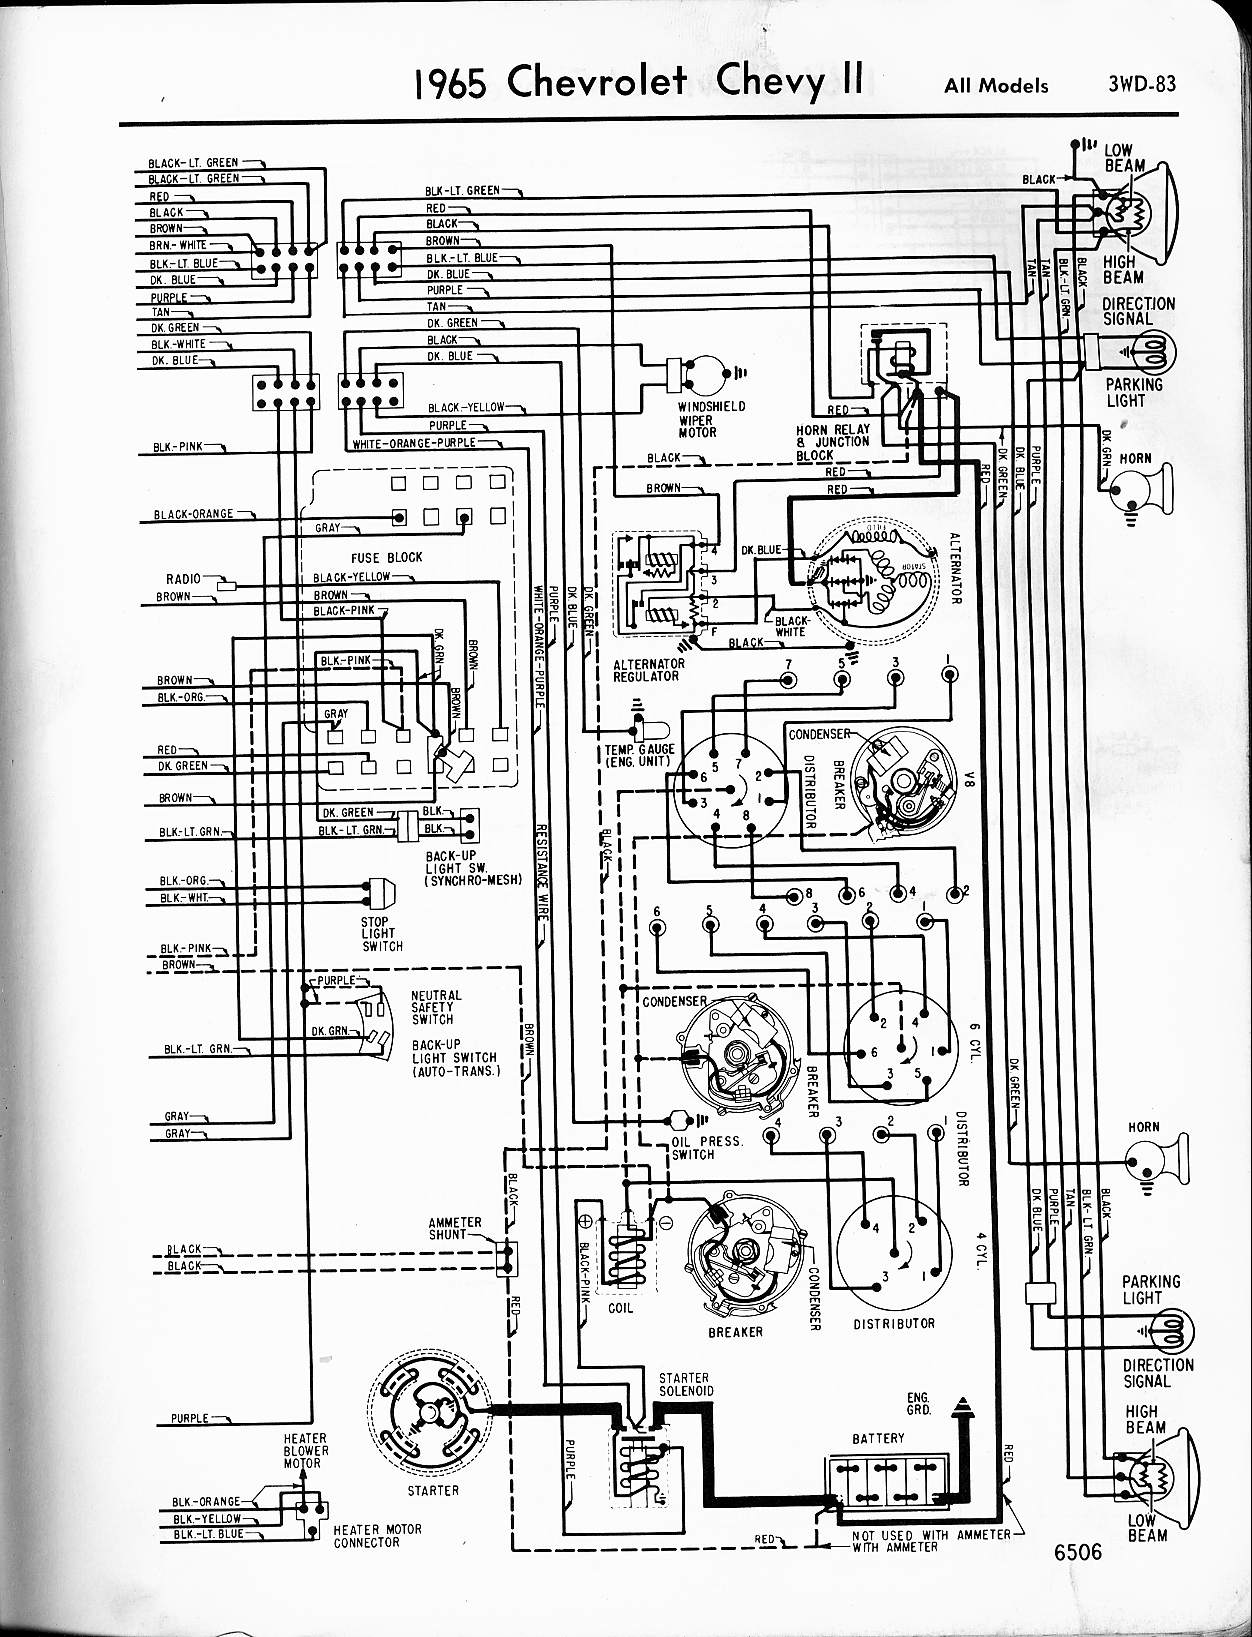 MWireChev65_3WD 083 chevy diagrams pontiac hood tach wiring diagram at edmiracle.co